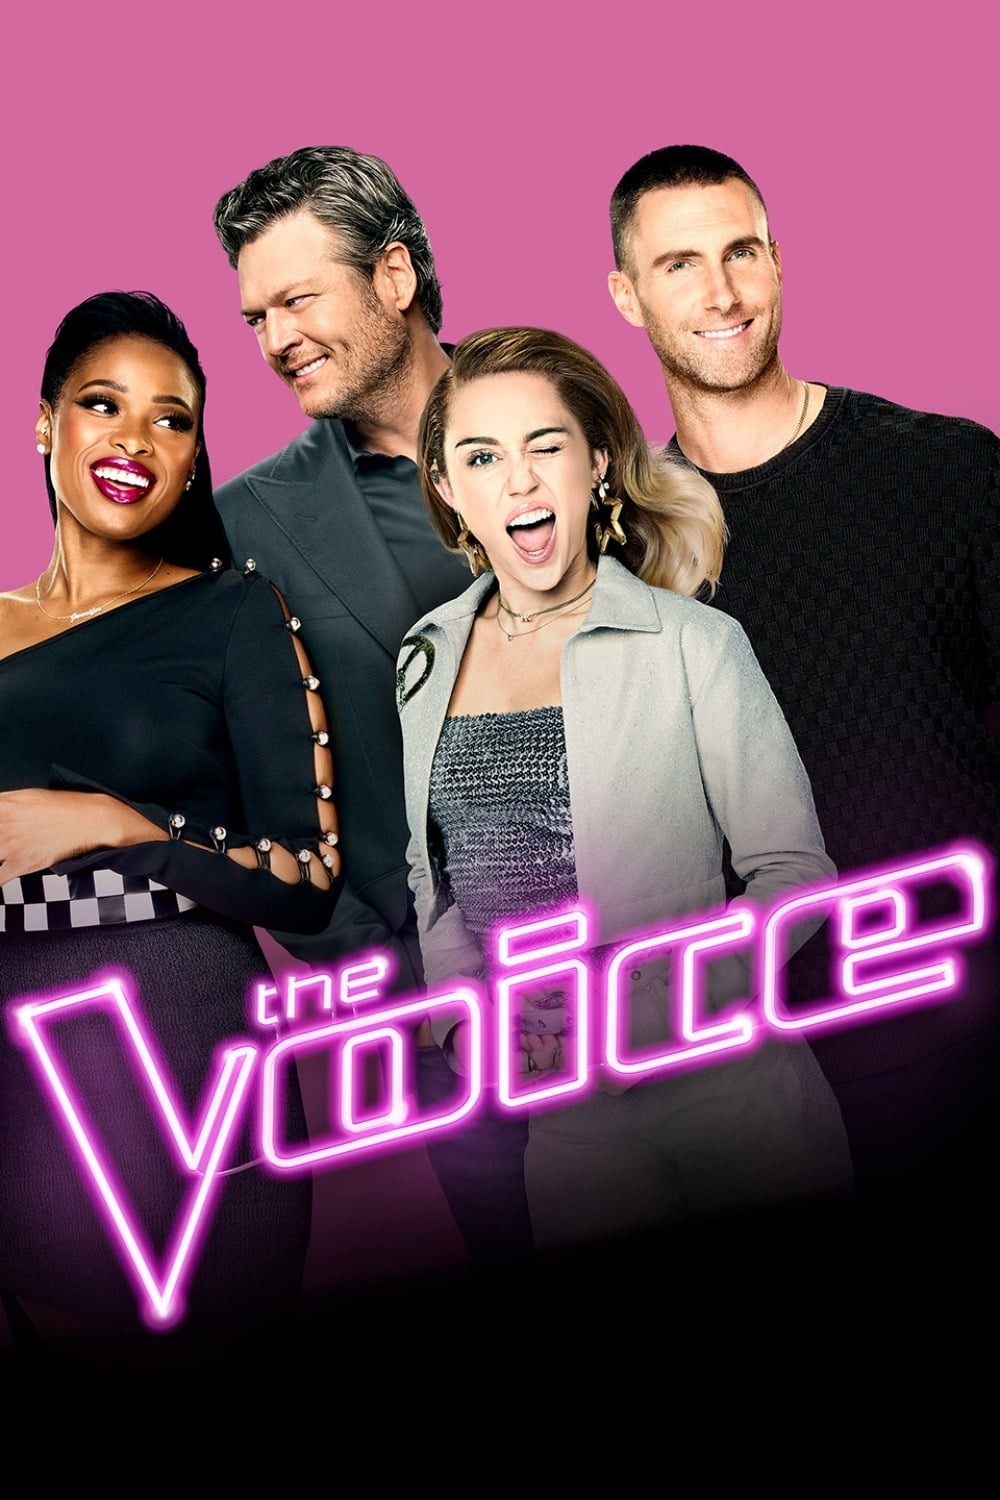 The Voice Within The Cards: The Voice (TV Series 2011- )